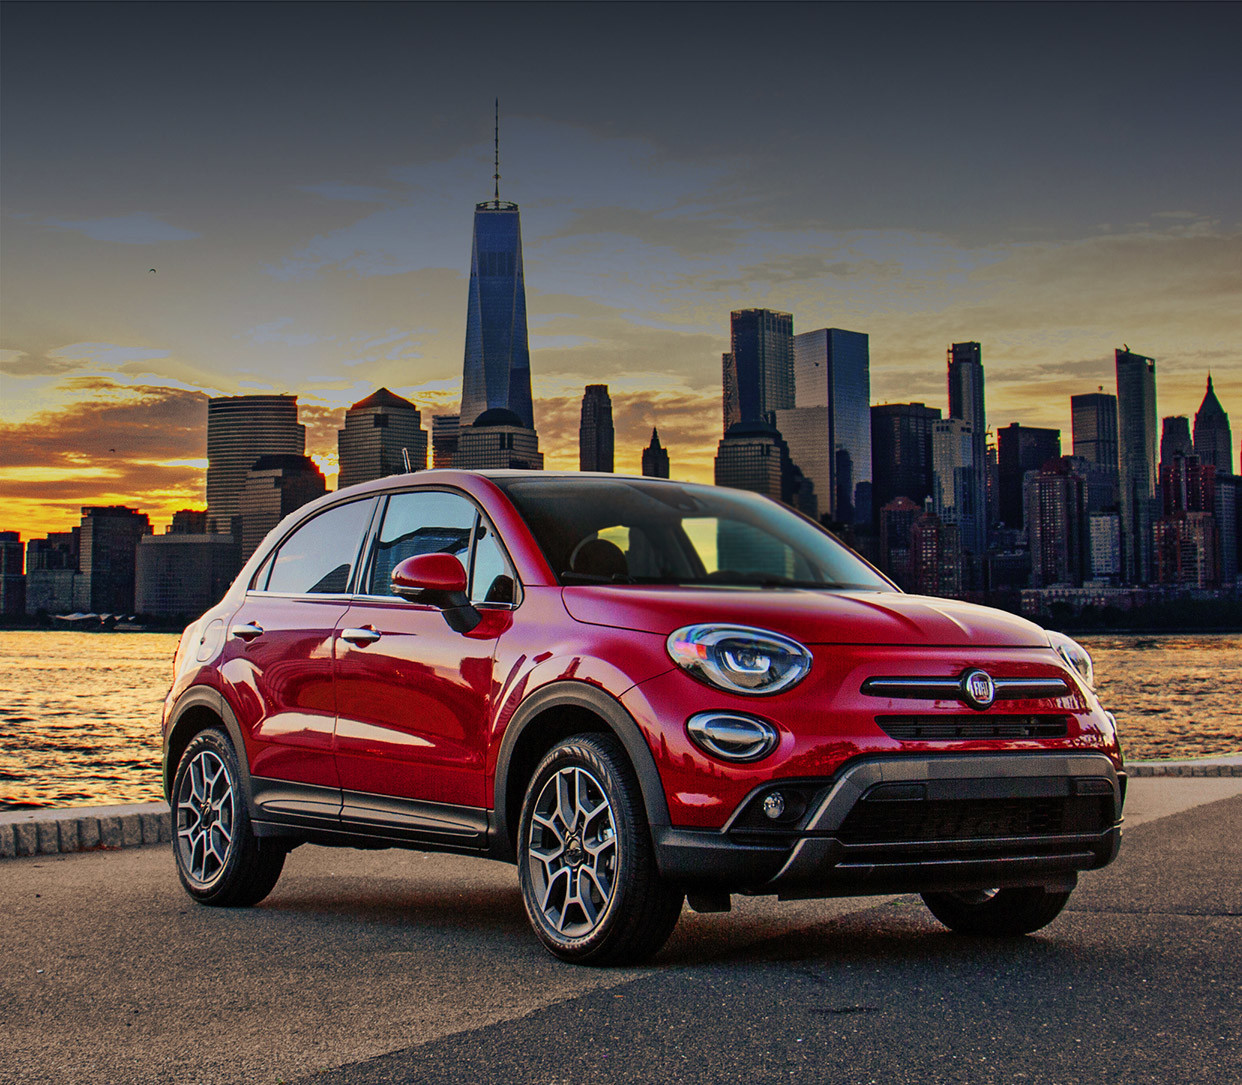 The red 2020 Fiat 500X parked outdoors near lake in front of urban scenery